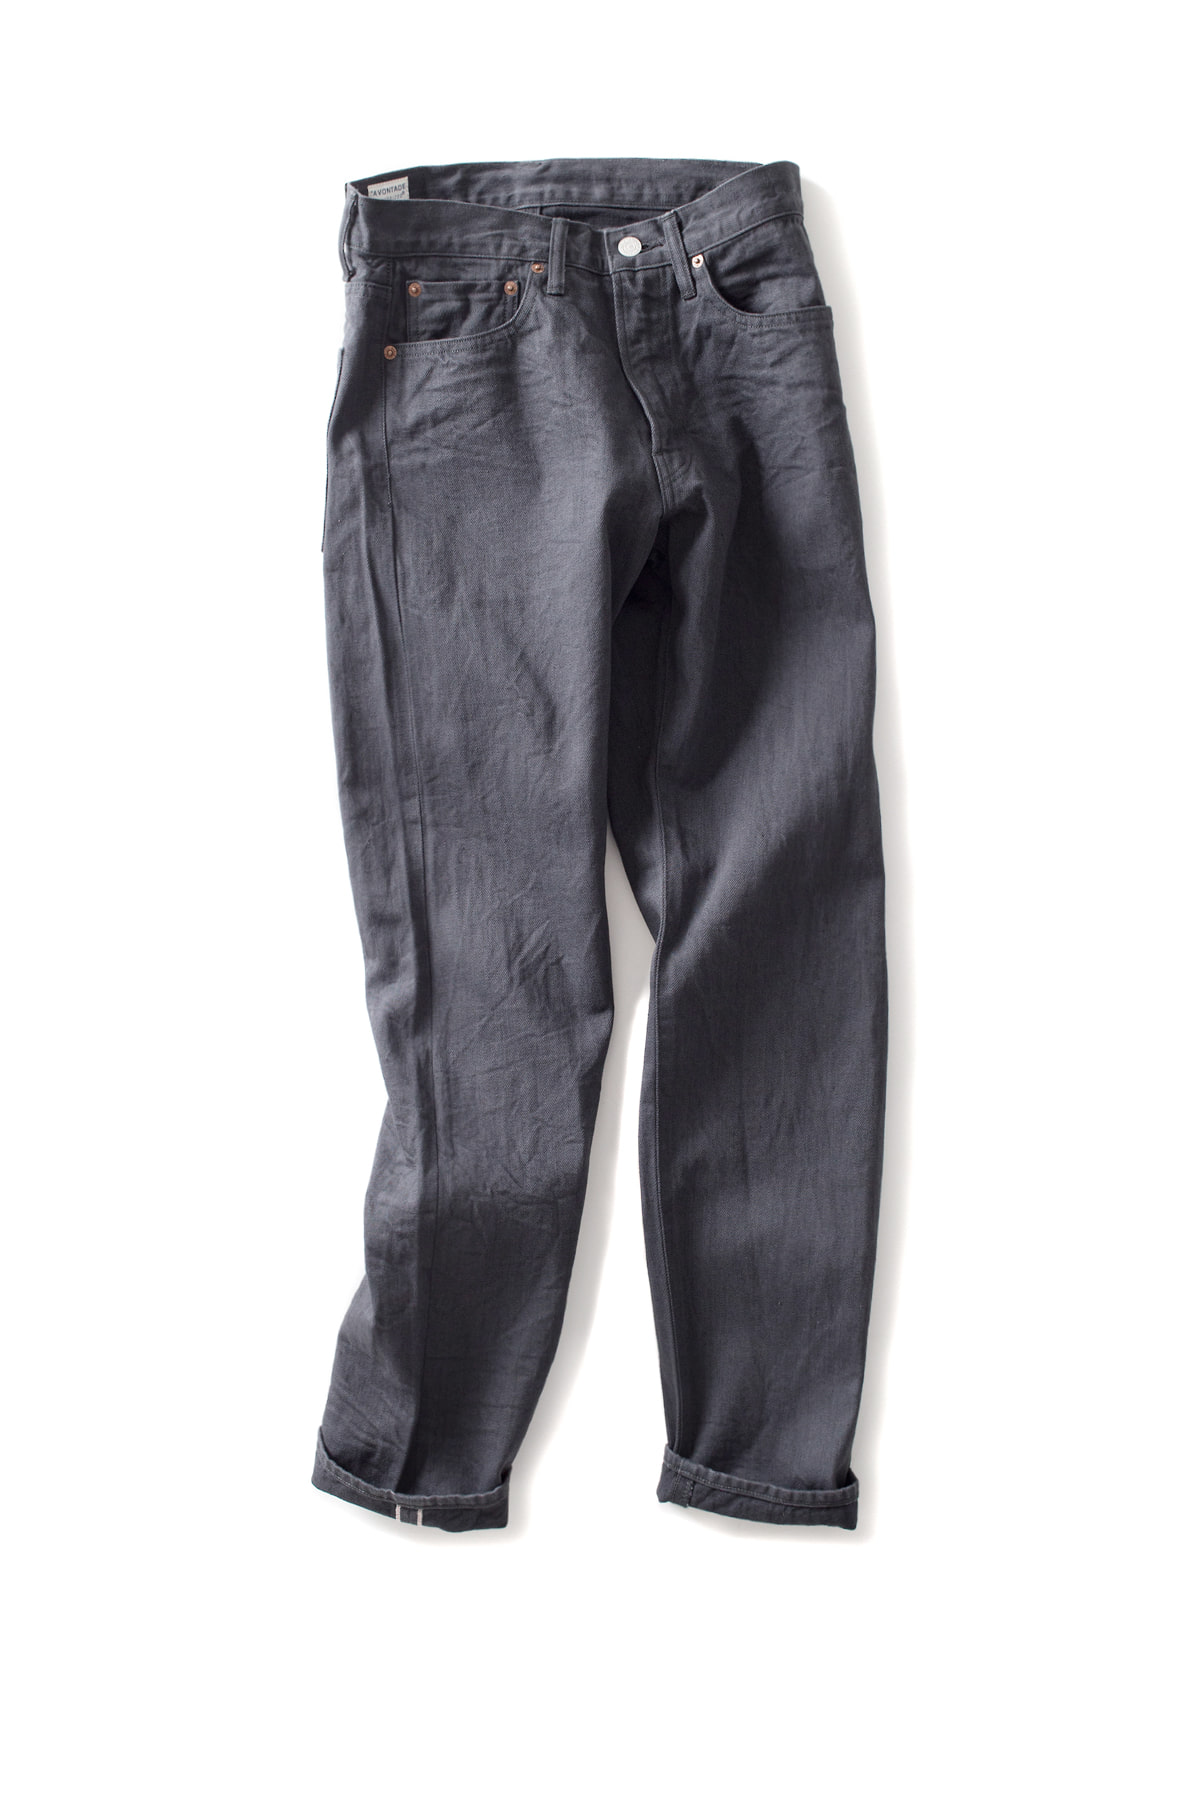 A vontade : 5 Pocket Jeans - Narrow Fit (Fade Black)